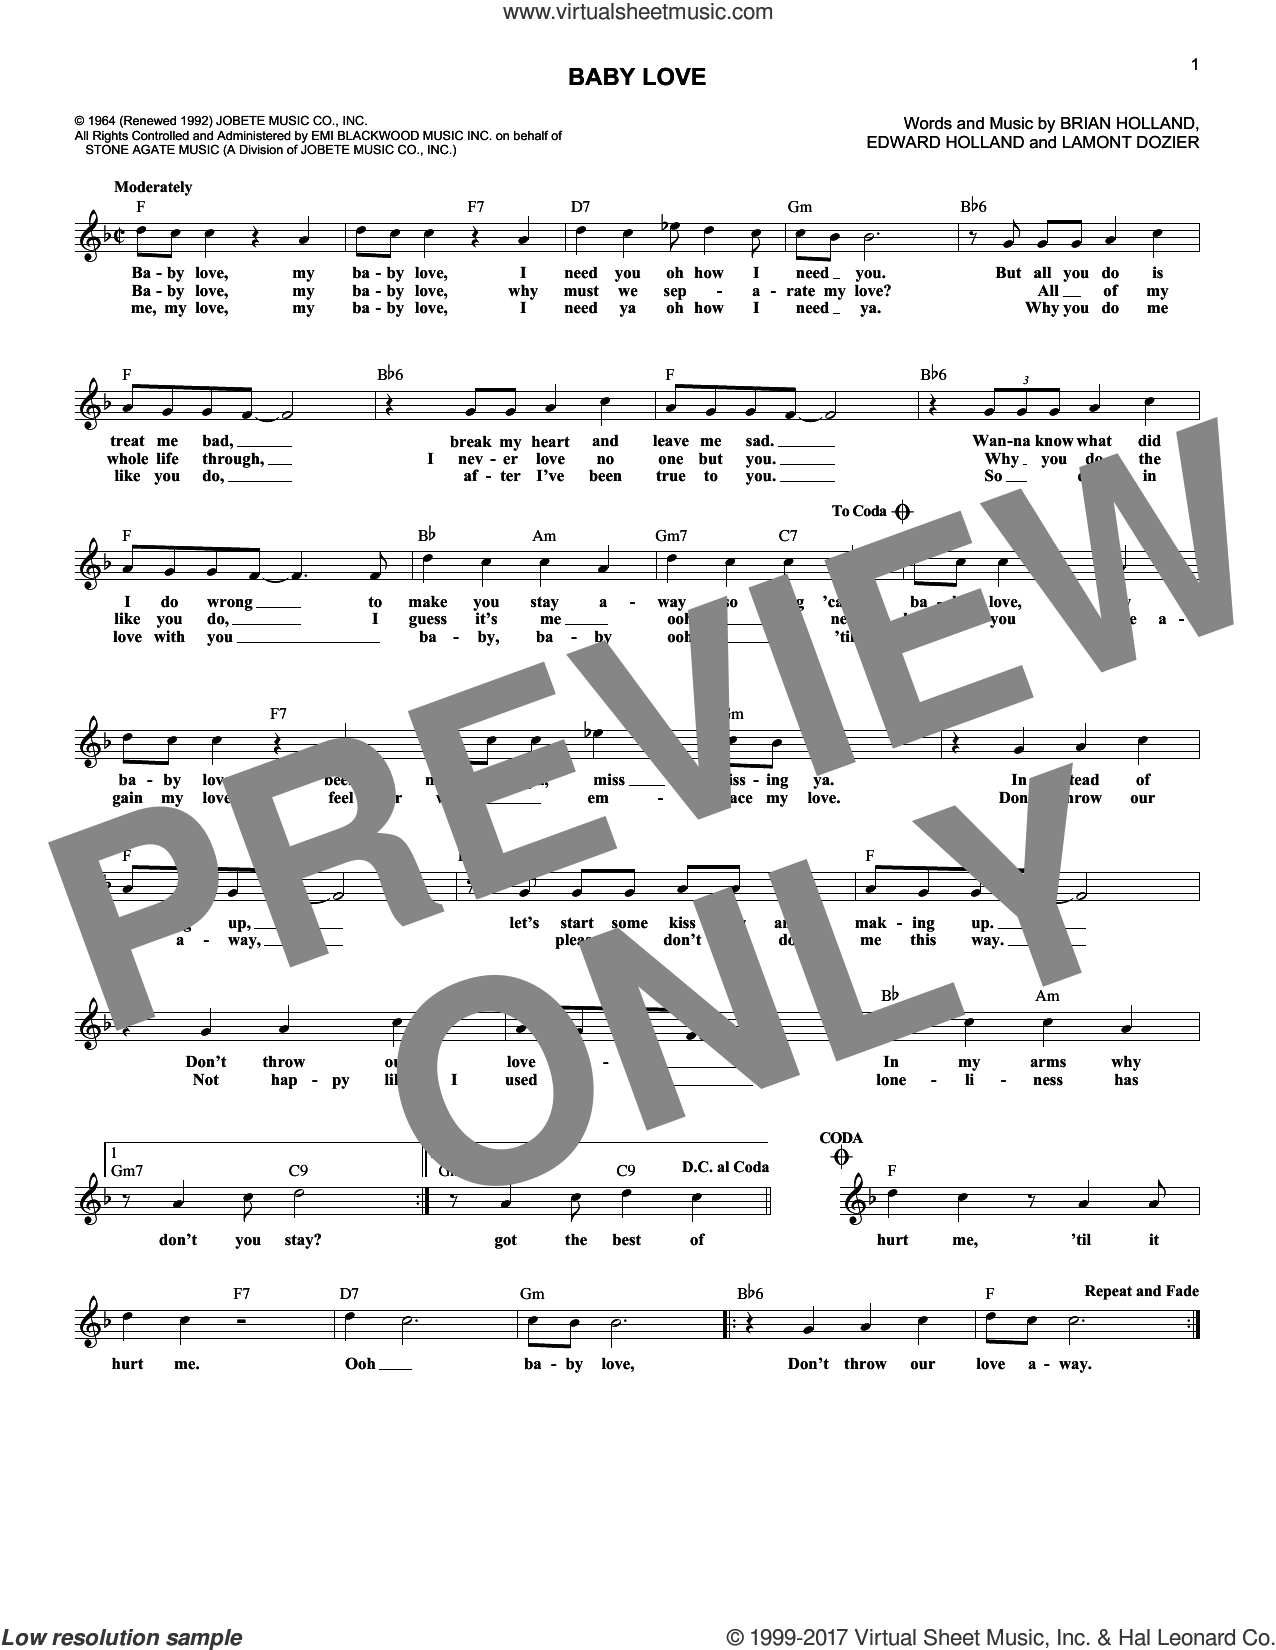 Baby Love sheet music for voice and other instruments (fake book) by The Supremes, Brian Holland, Edward Holland Jr. and Lamont Dozier, intermediate skill level